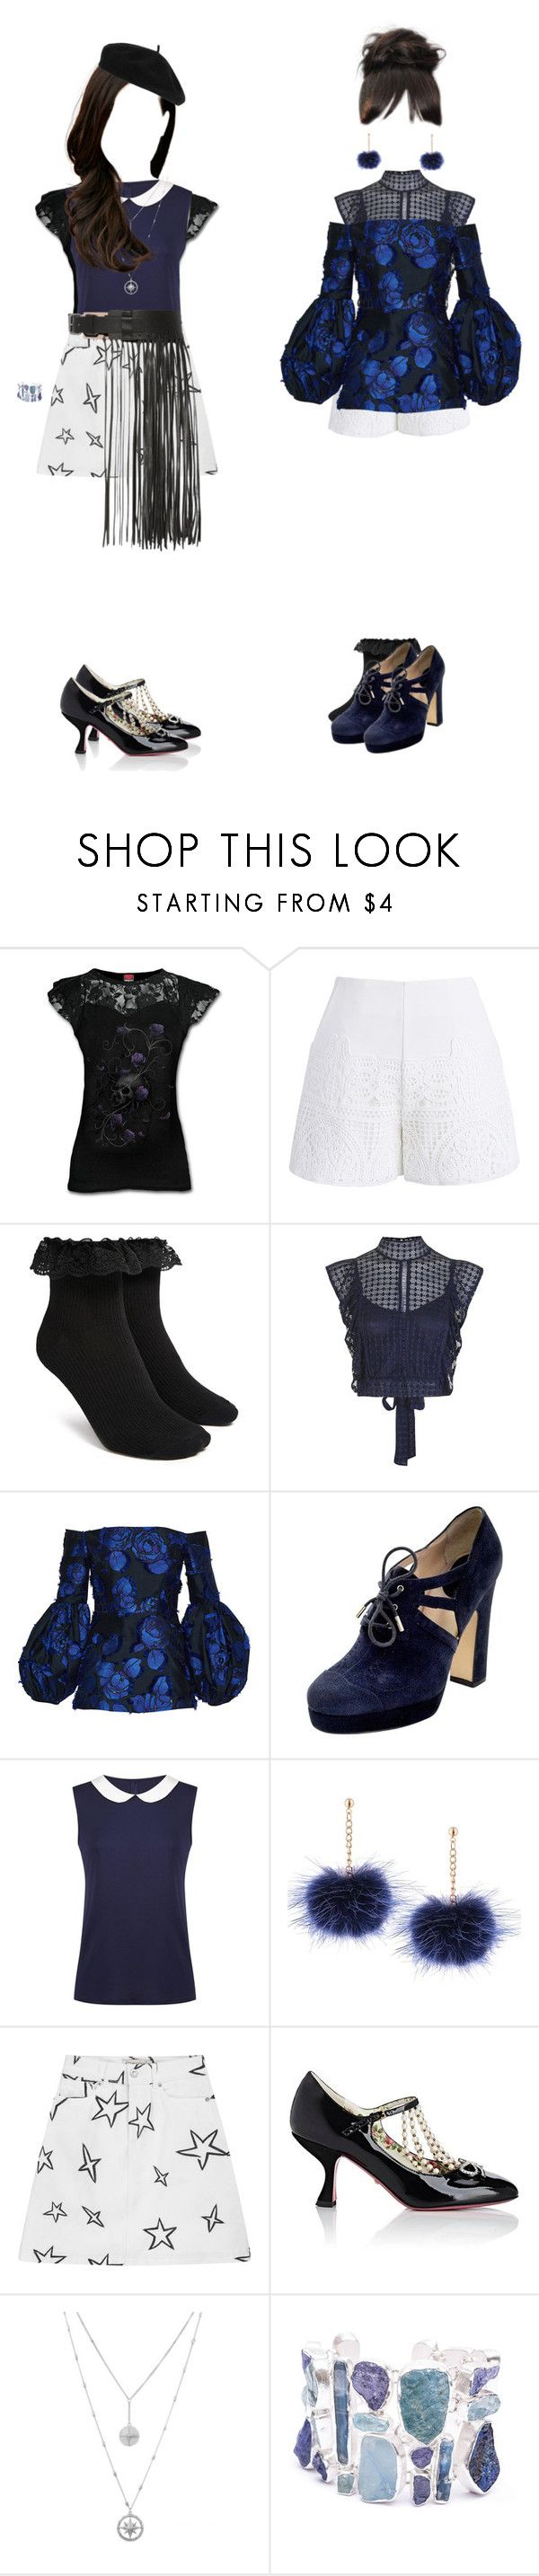 """""""D.Na: """"Wish Upon a Star"""" M/V Solo Scenes"""" by ultraviolet-official ❤ liked on Polyvore featuring Chicwish, Forever 21, TFNC, Lela Rose, D&G, Être Cécile, By Malene Birger, Gucci, Poppy Jewellery and Accessorize"""